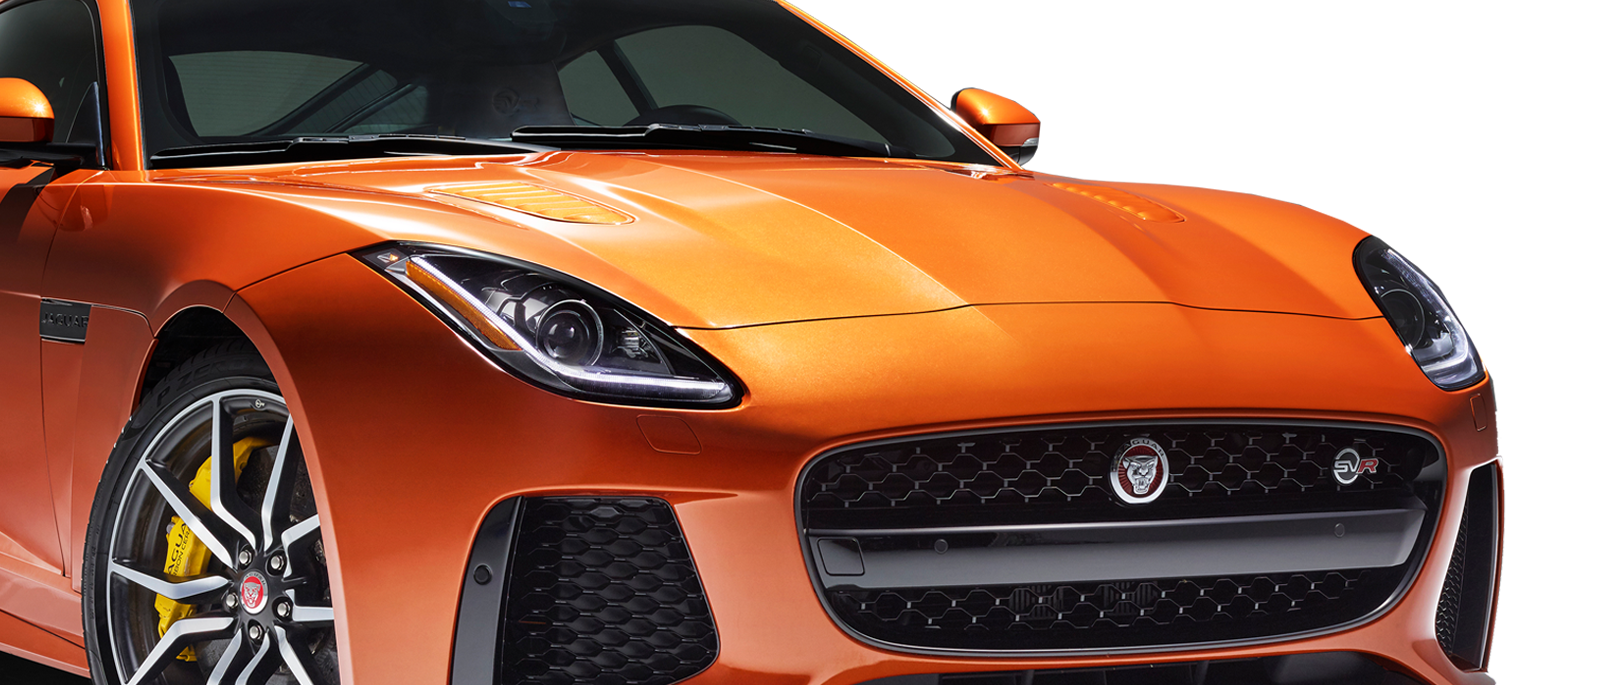 jaguar f type svr coupe car rental exotic car collection. Black Bedroom Furniture Sets. Home Design Ideas